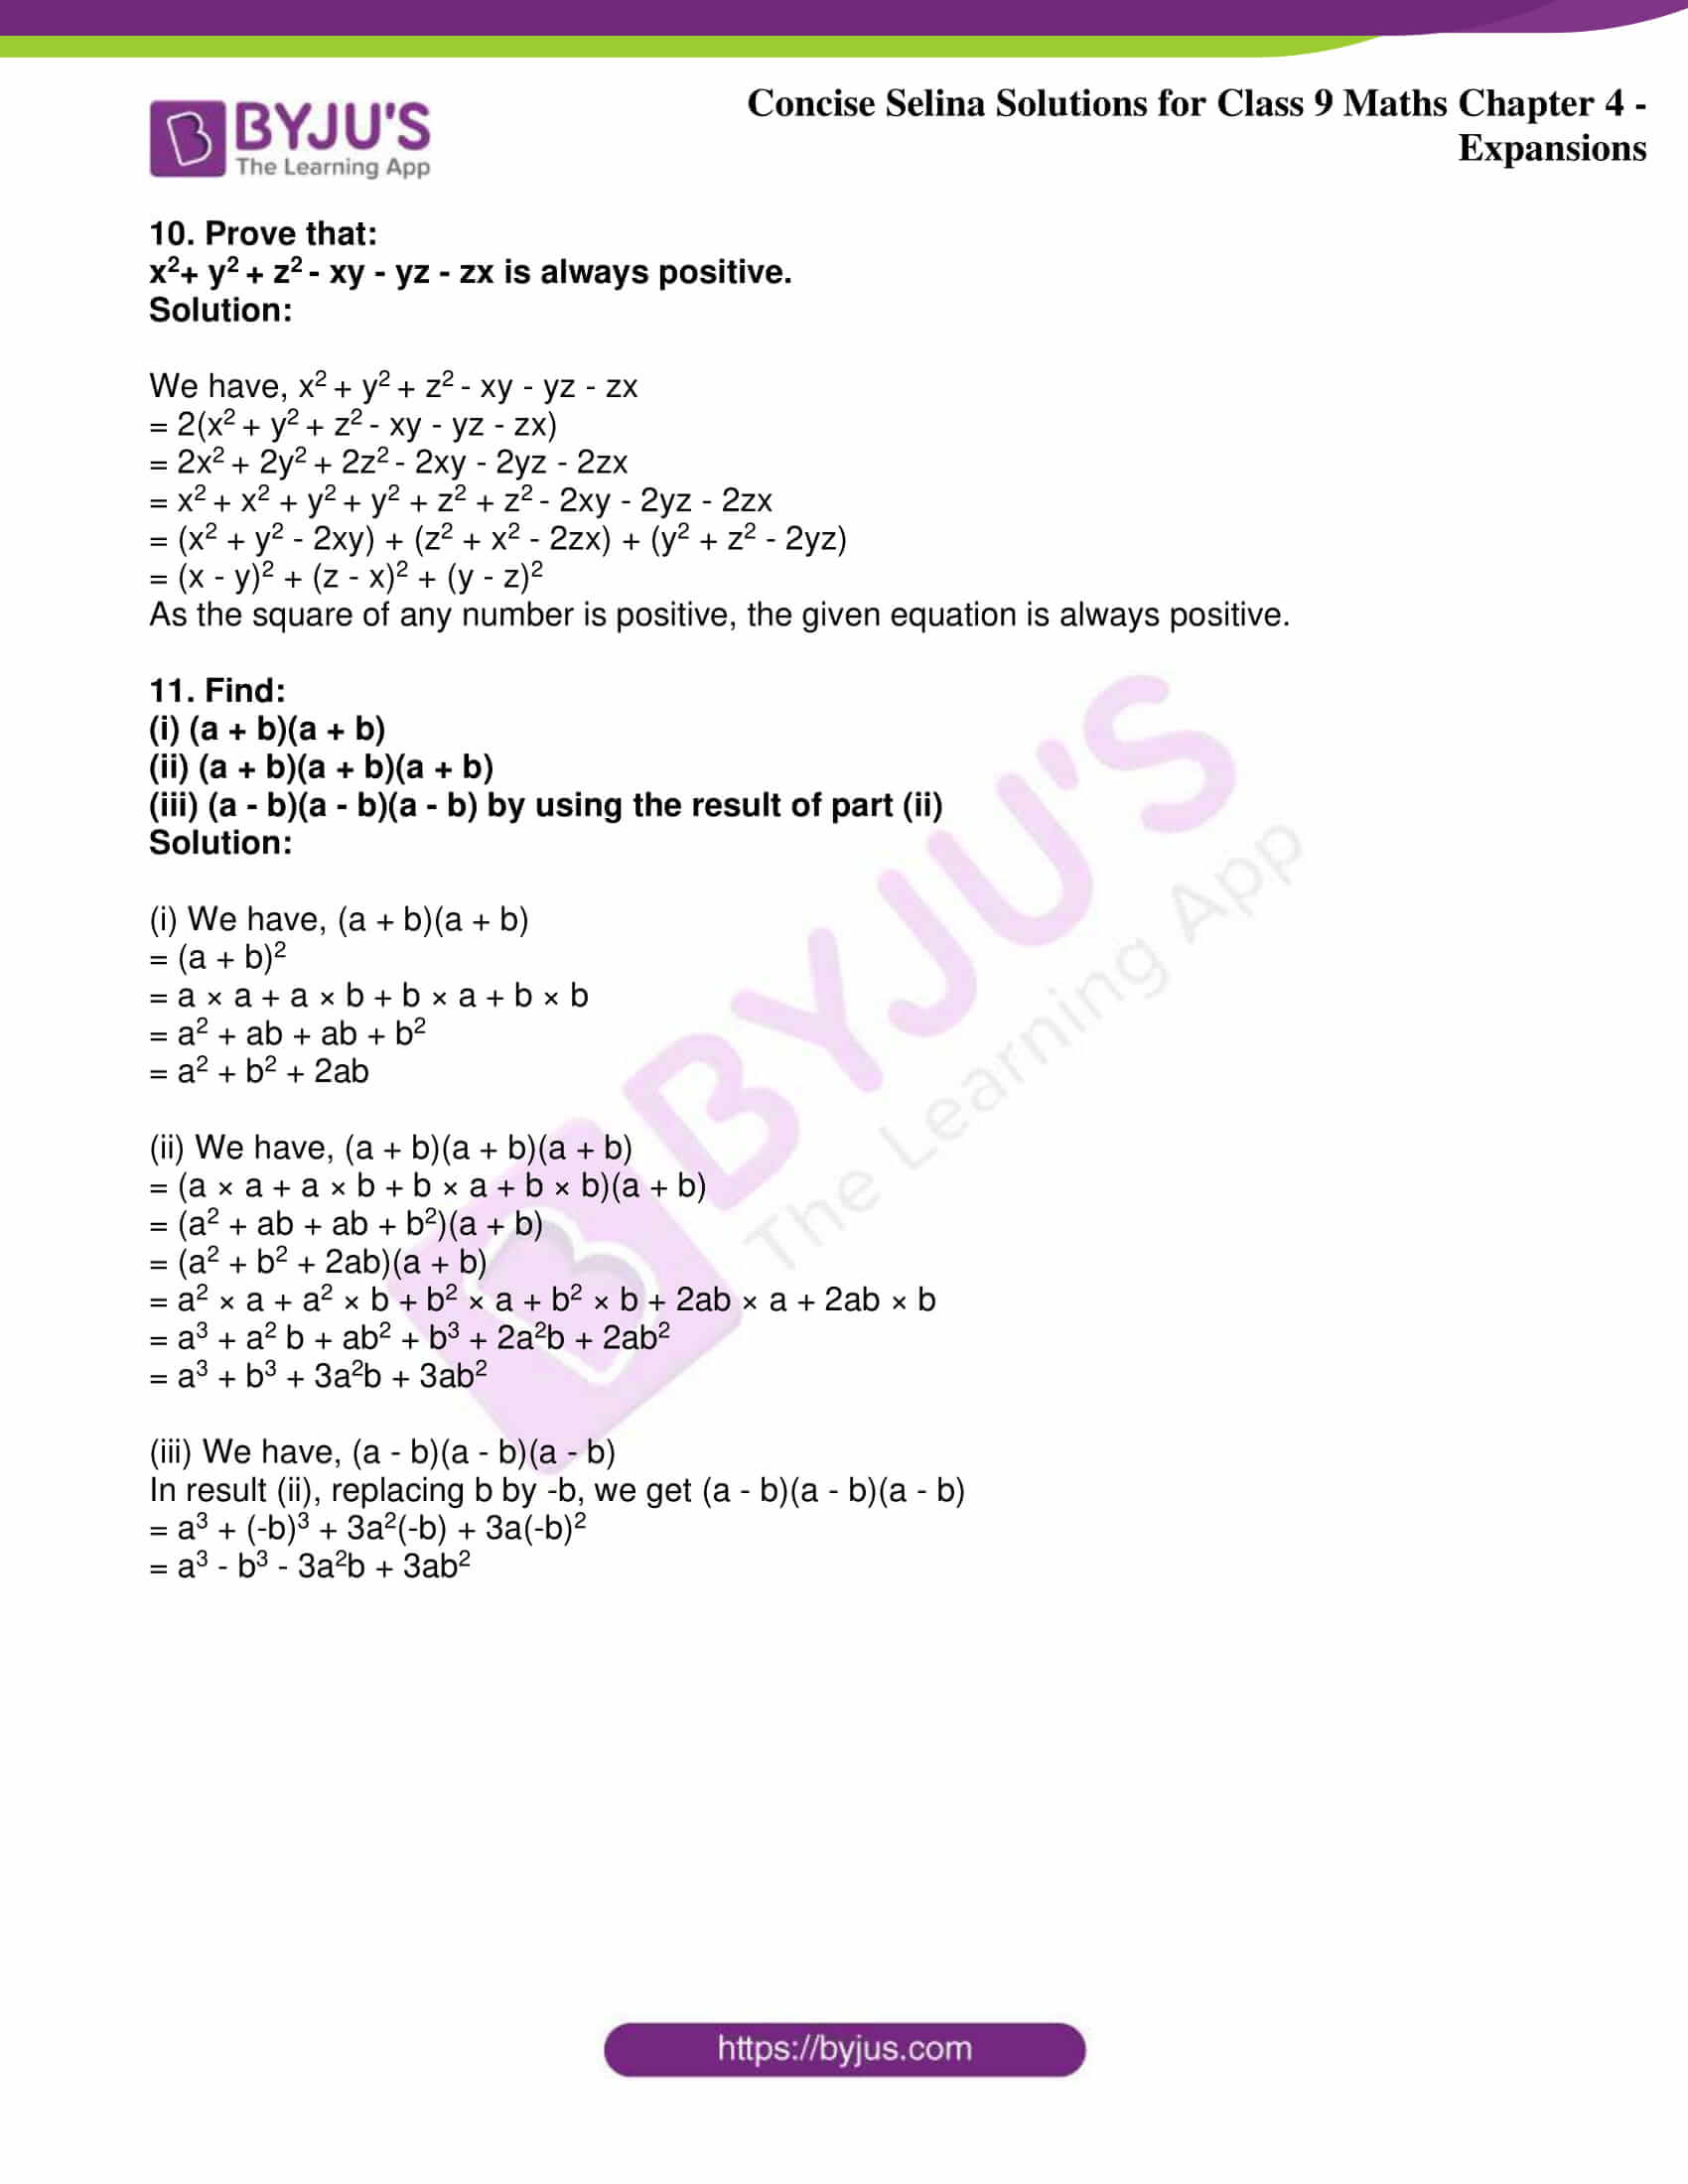 icse class 9 maths may10 selina solutions chapter 4 expansions 34